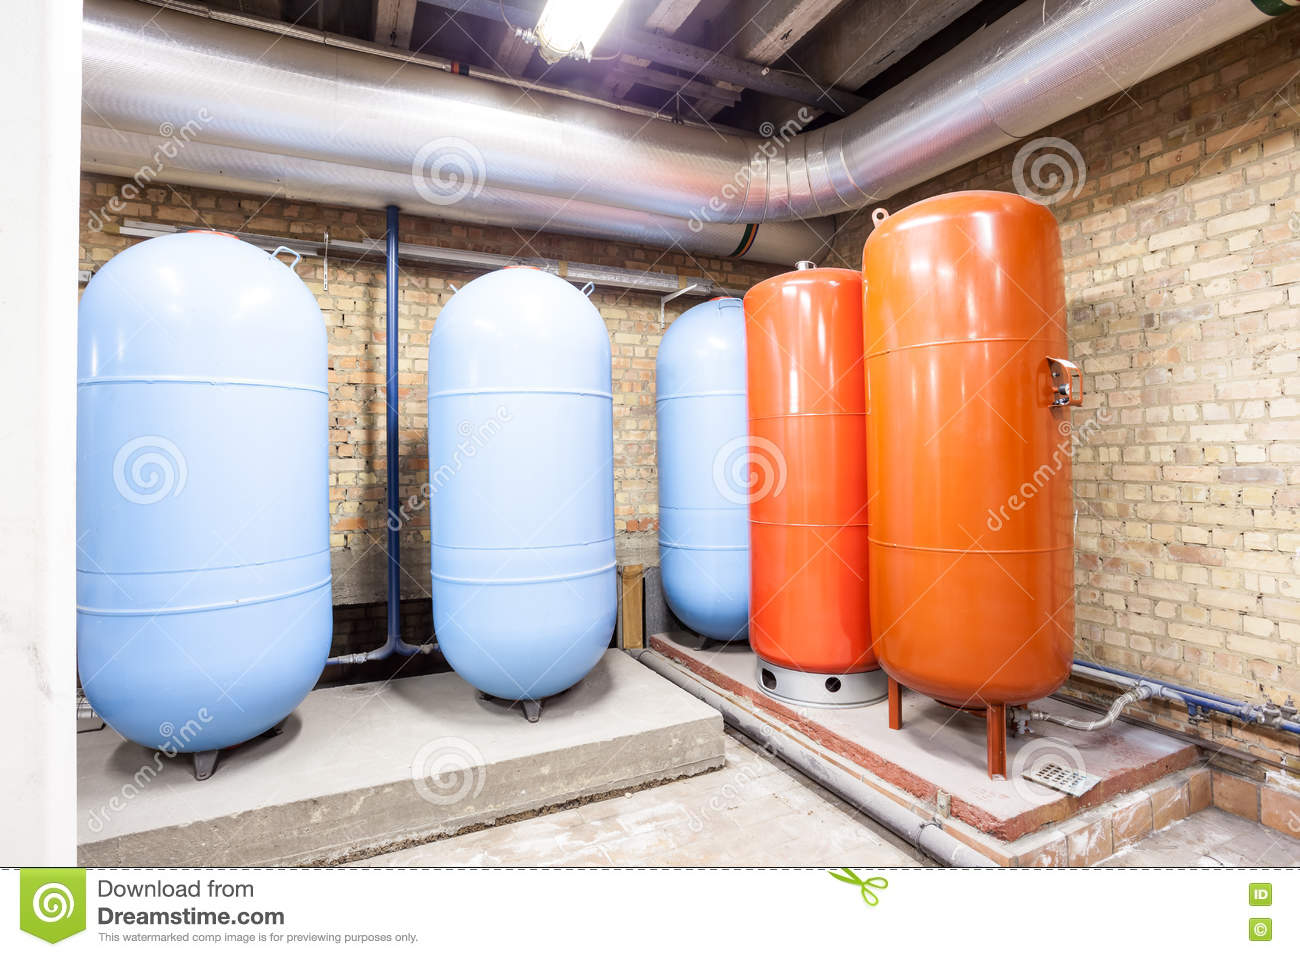 Five expansion boilers